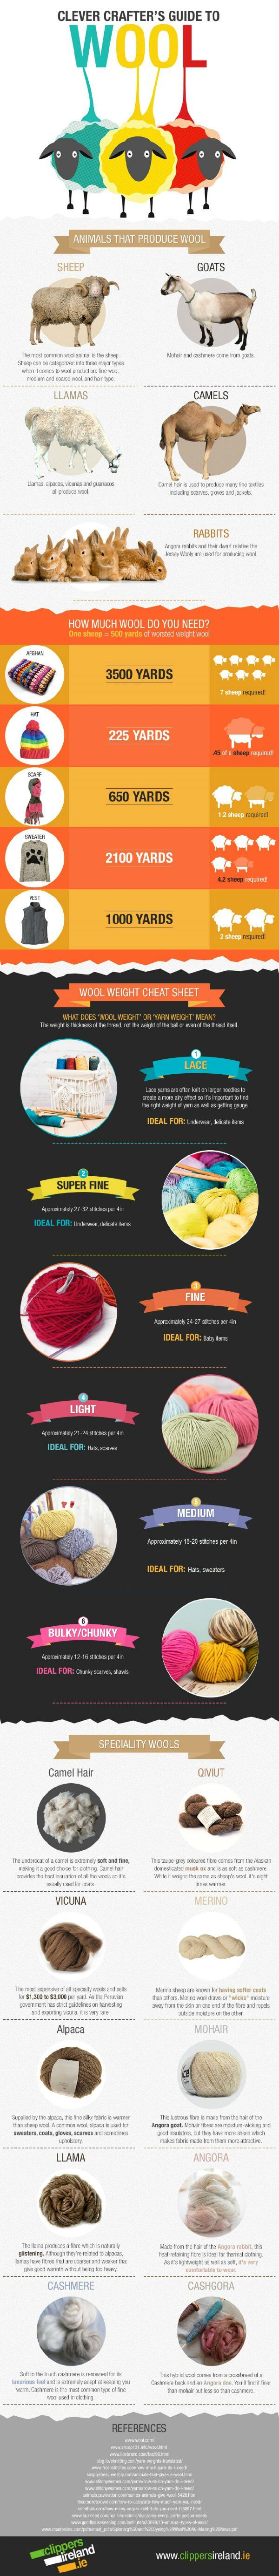 A Clever Crafter's Guide to Wool | www.petalstopicots.com | #crochet #knit #yarn #wool #fiber